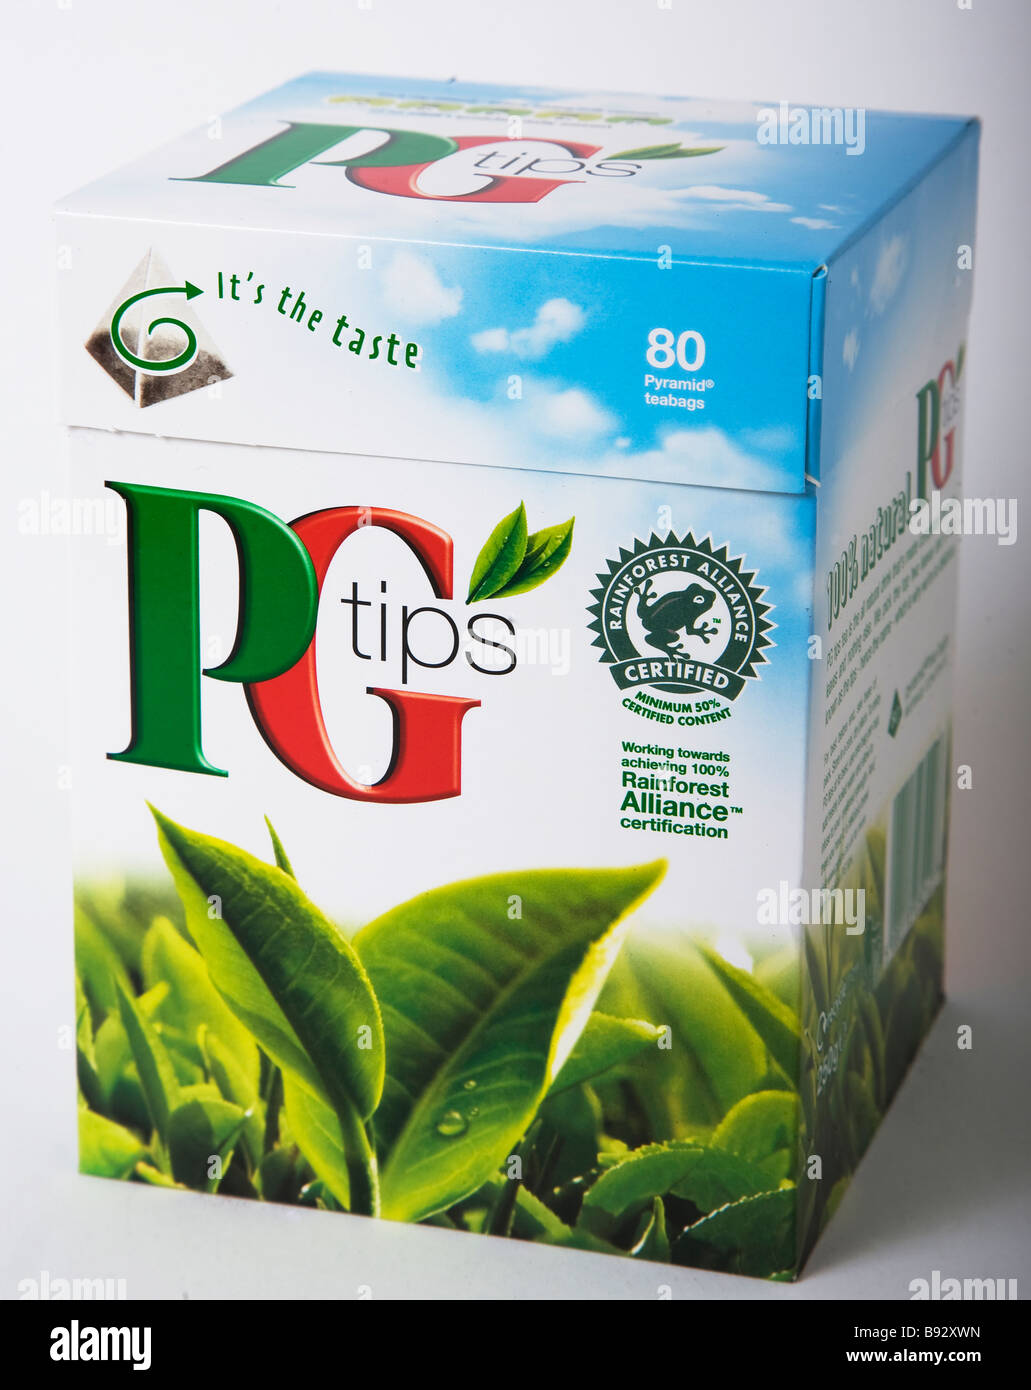 PG tips tea bags - Stock Image